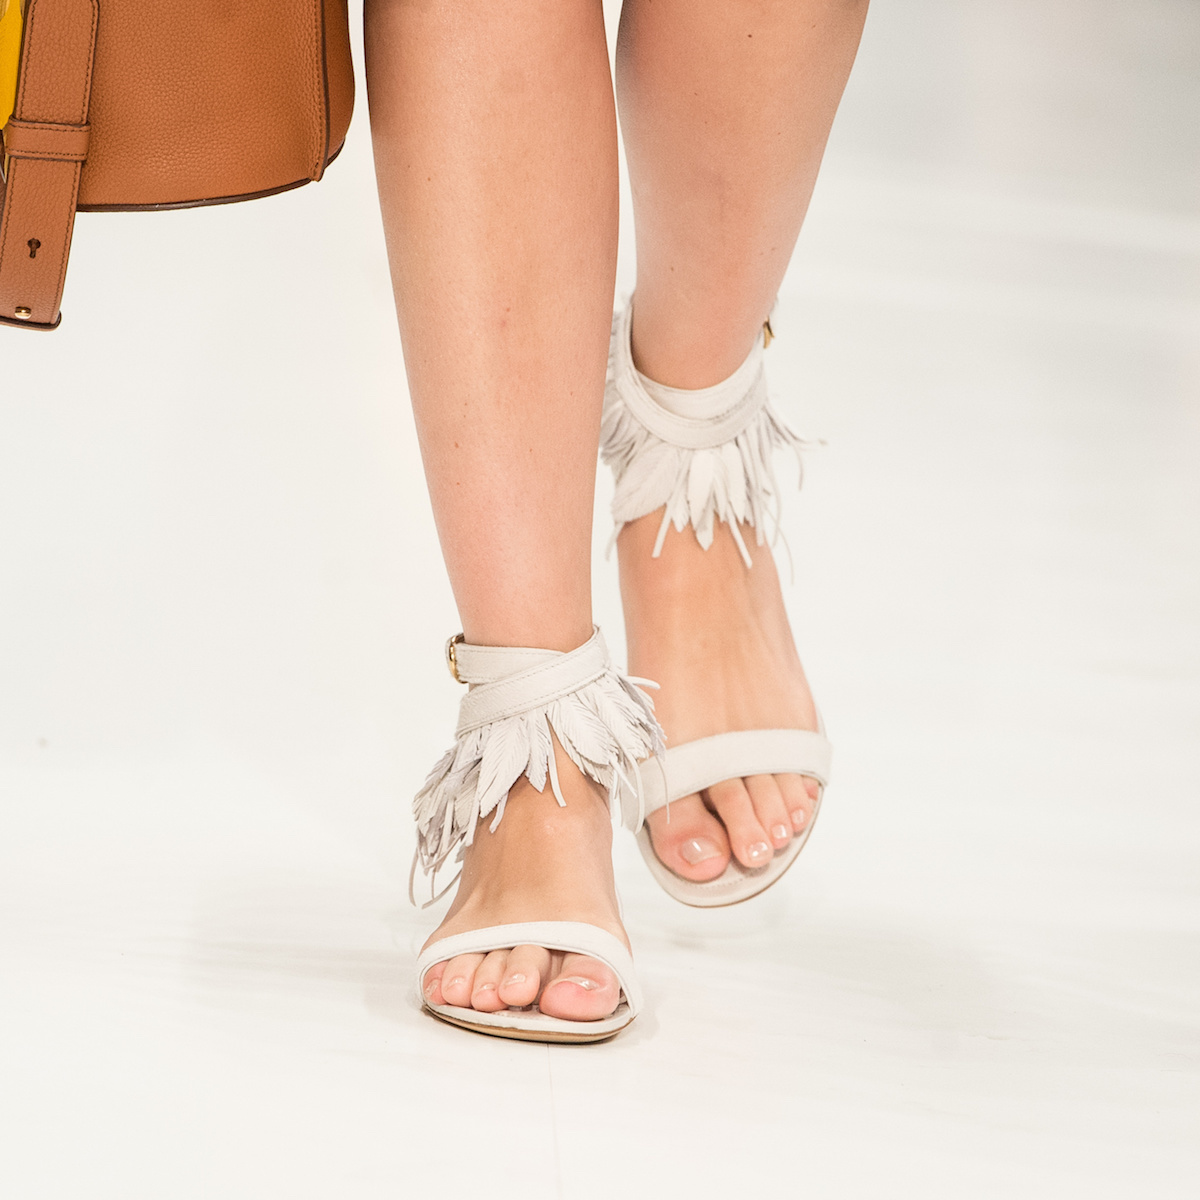 close-up-shoes-4.jpg